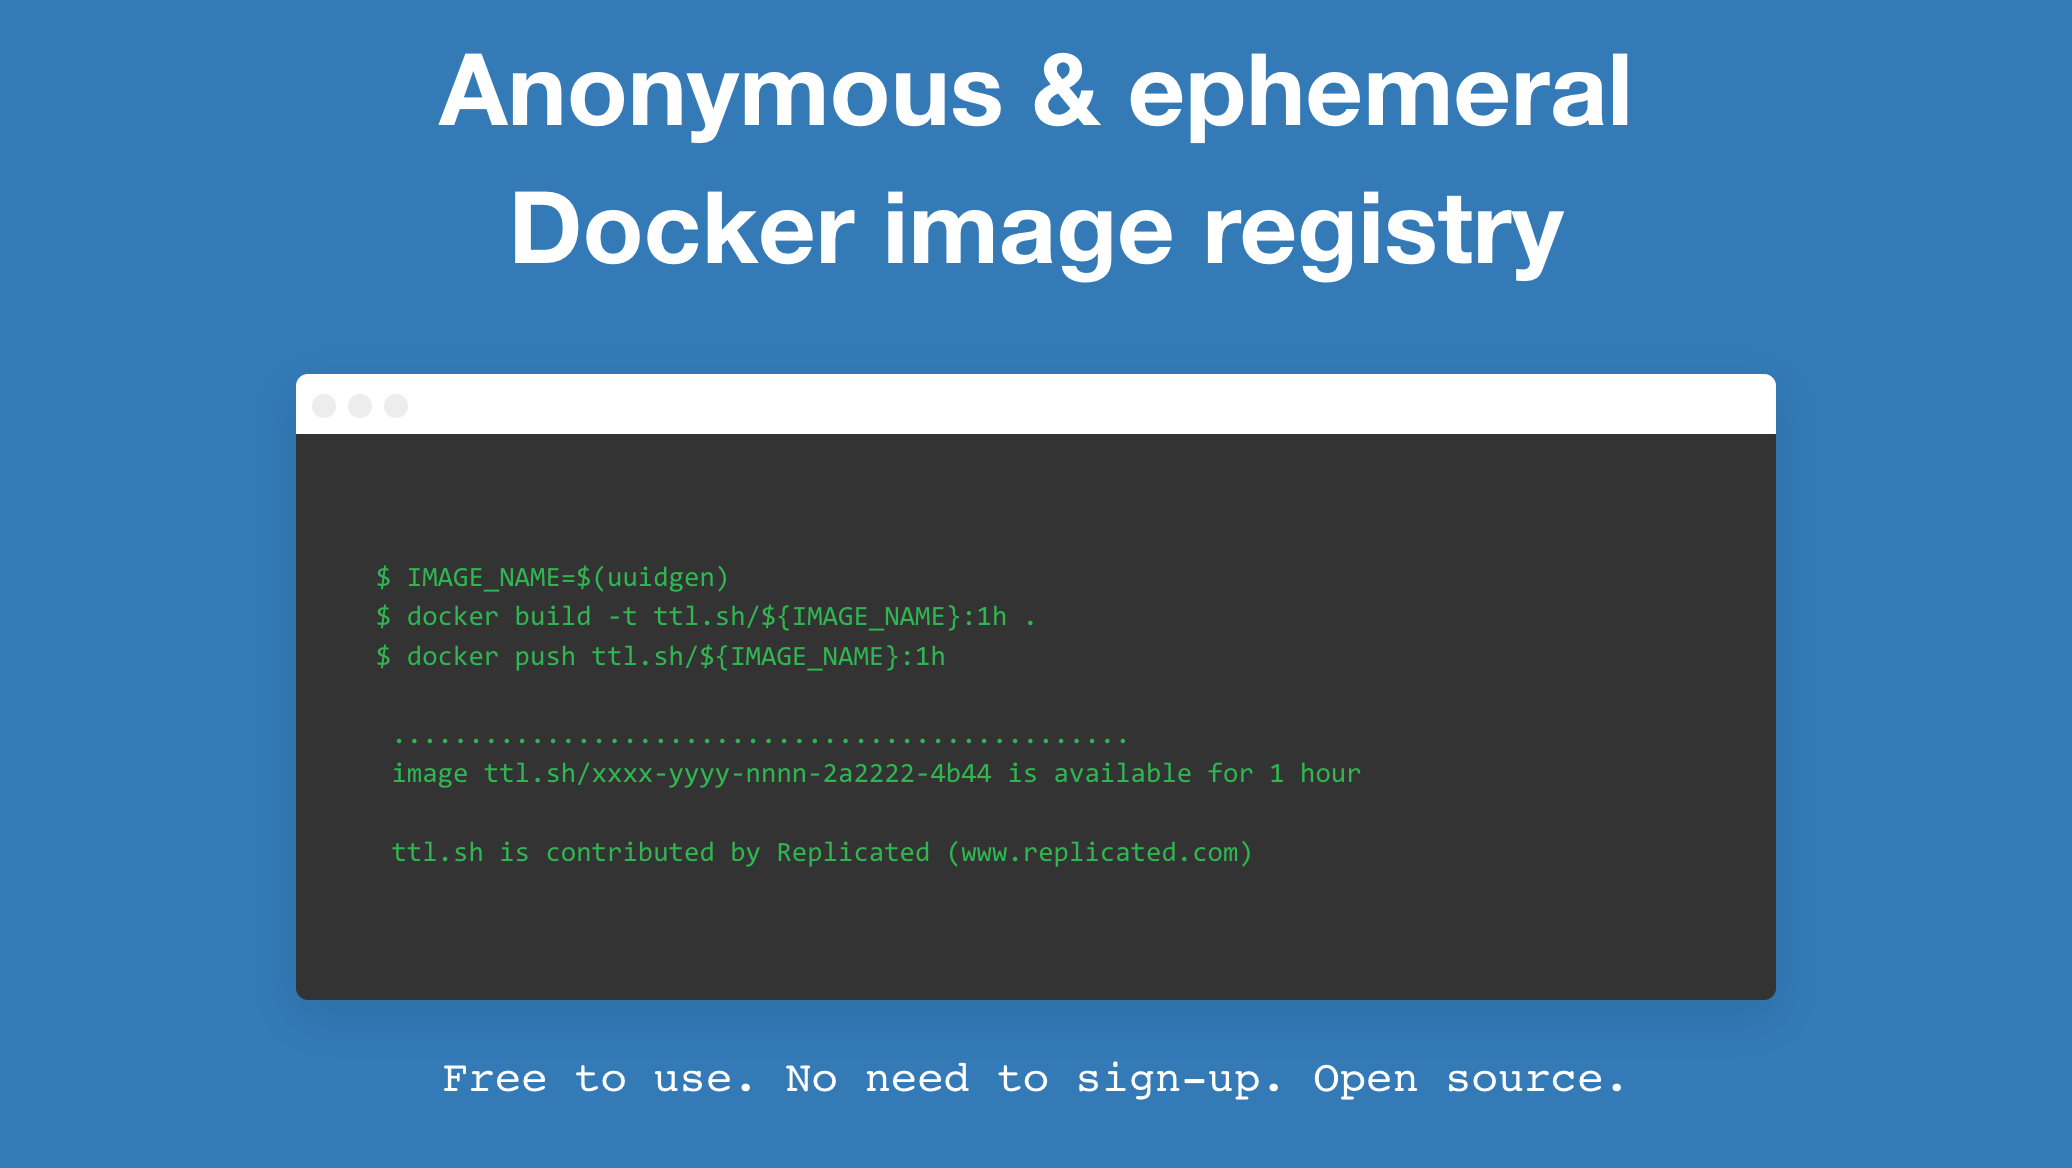 ttl.sh: Your anonymous and ephemeral Docker image registry thumbnail